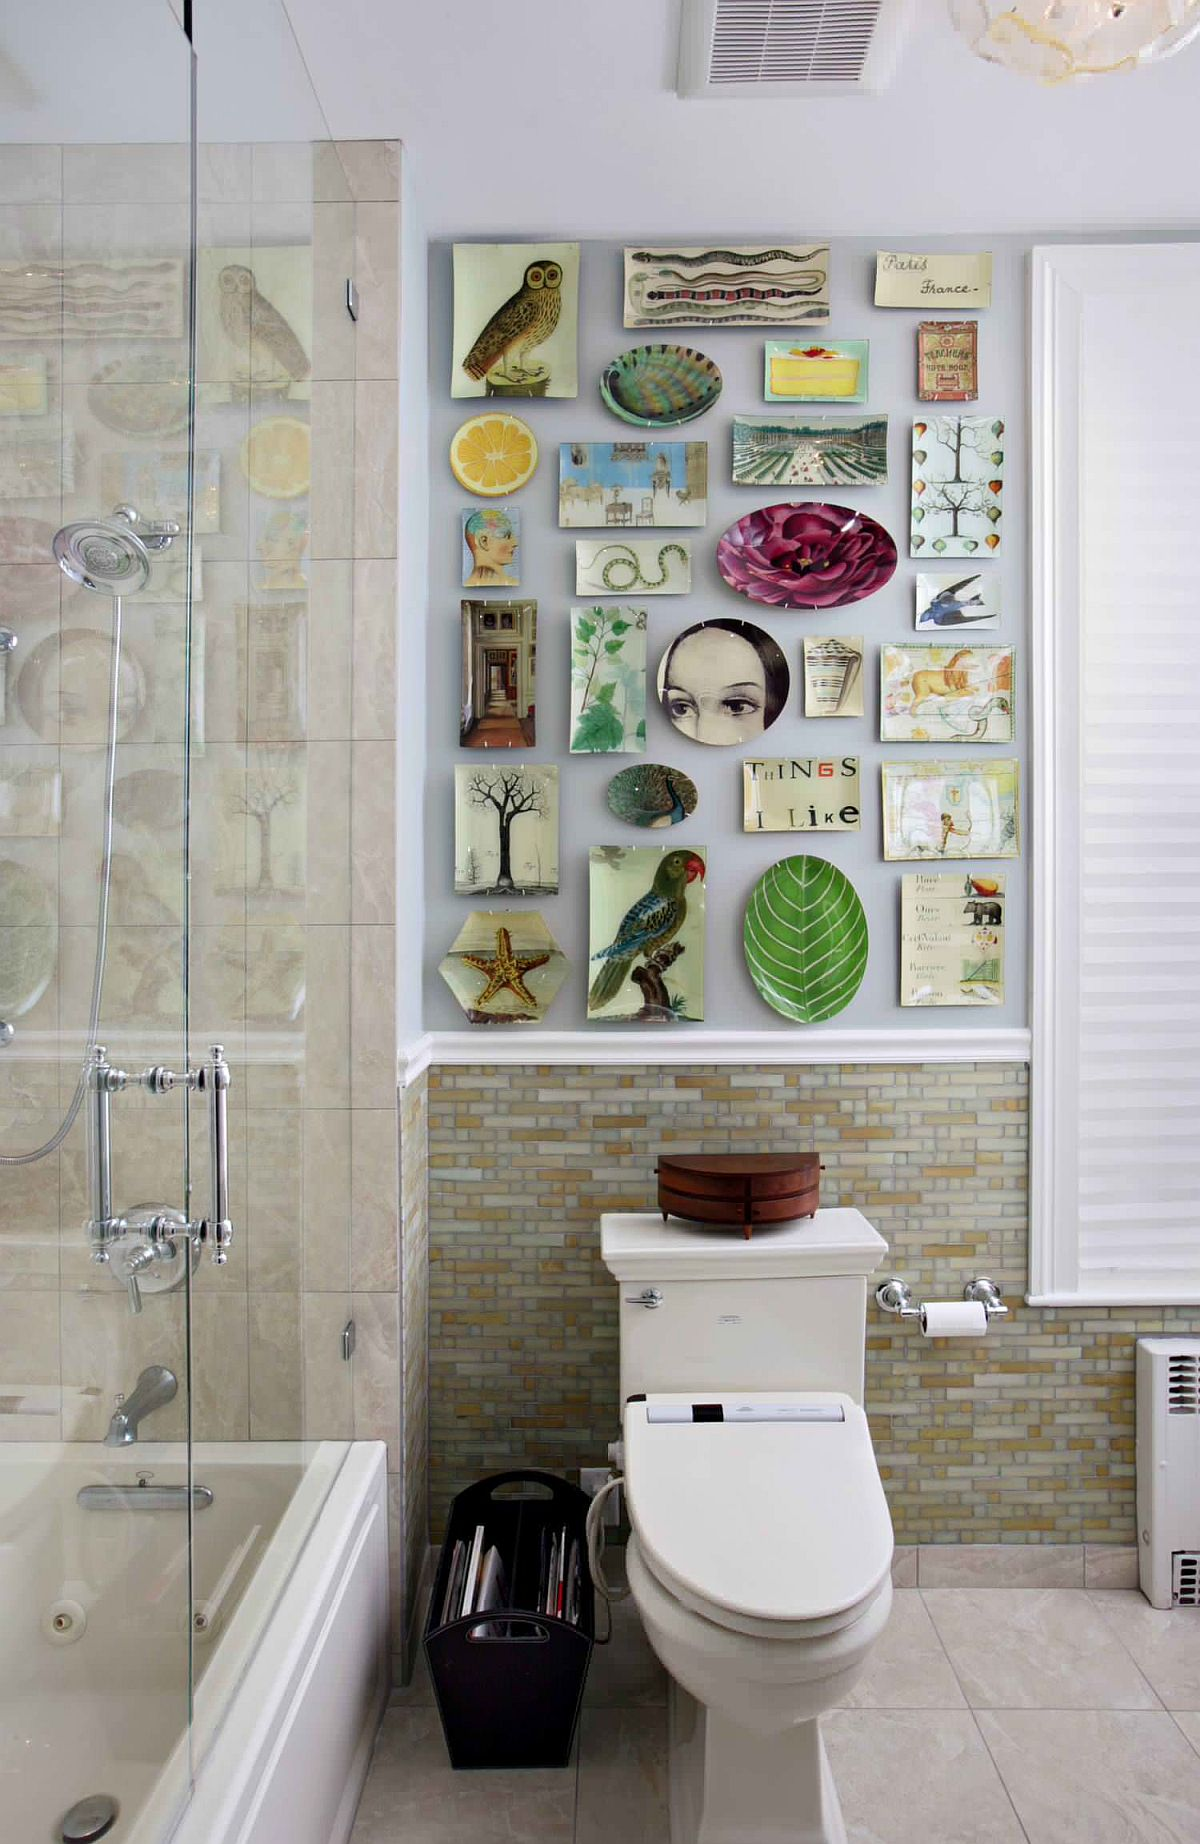 Decorating your Bathroom Walls: 5 Wall Art Ideas that Wow!